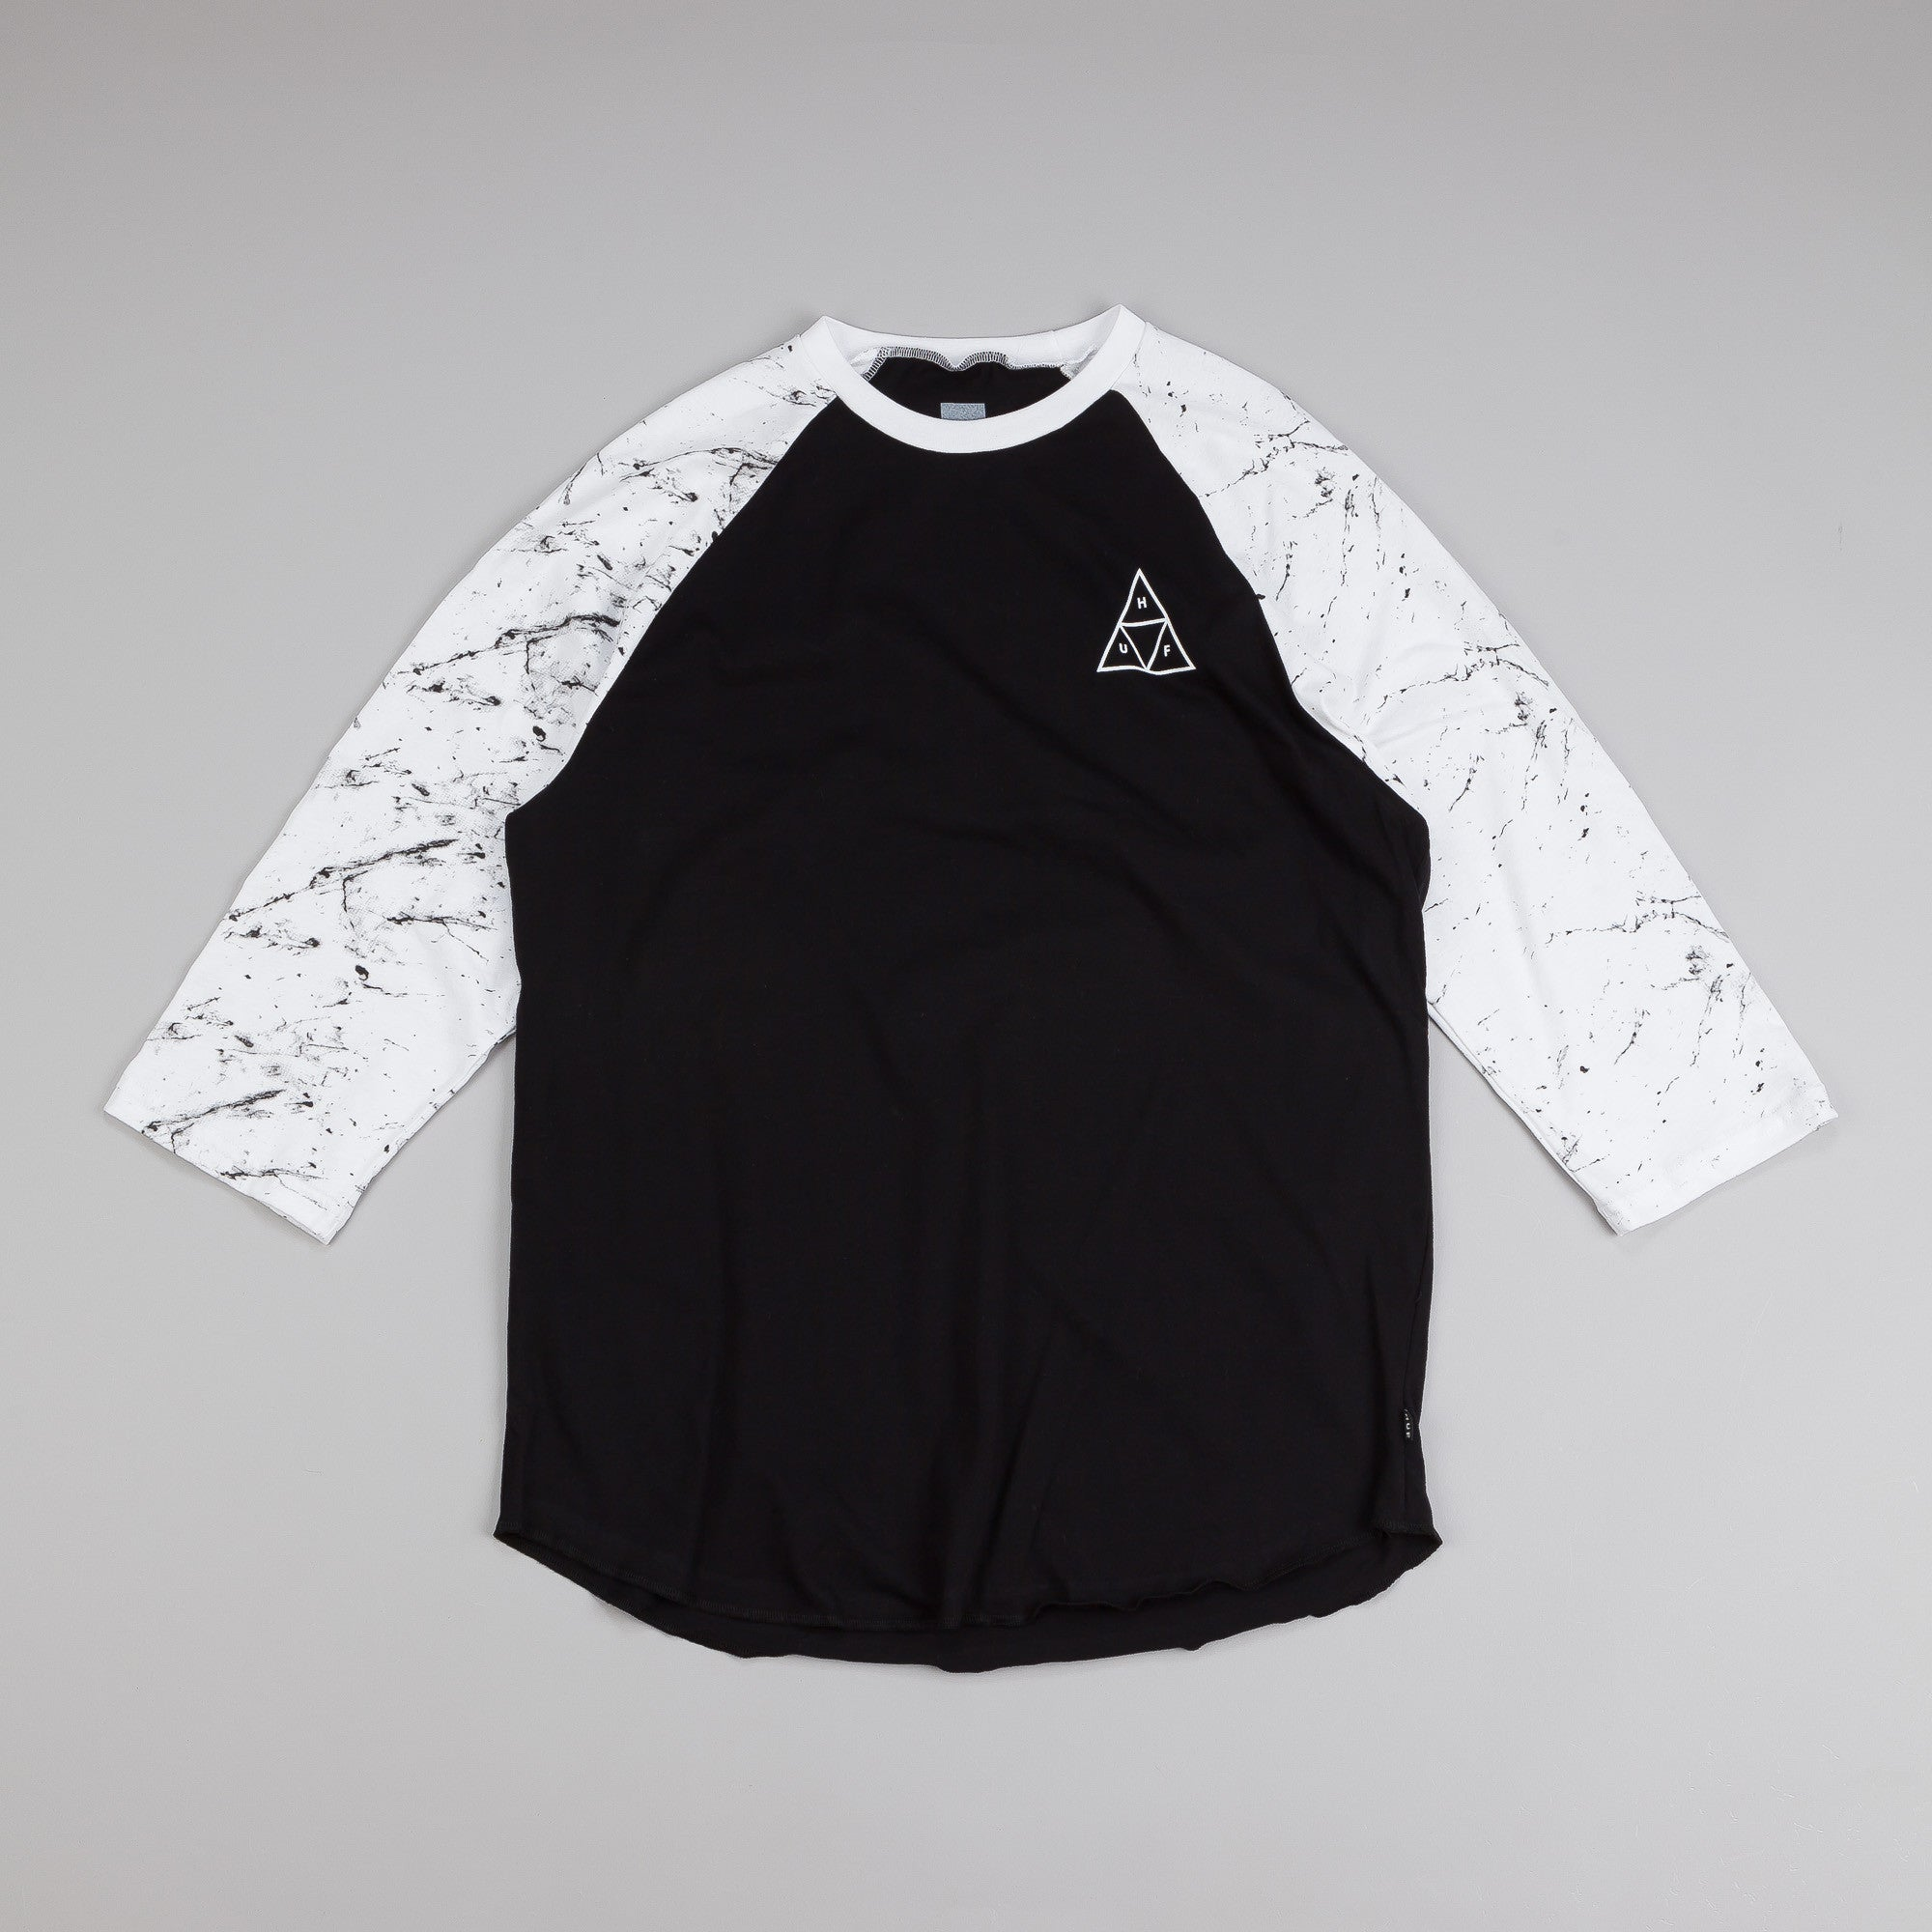 Huf Triangle Raglan T Shirt Black / White